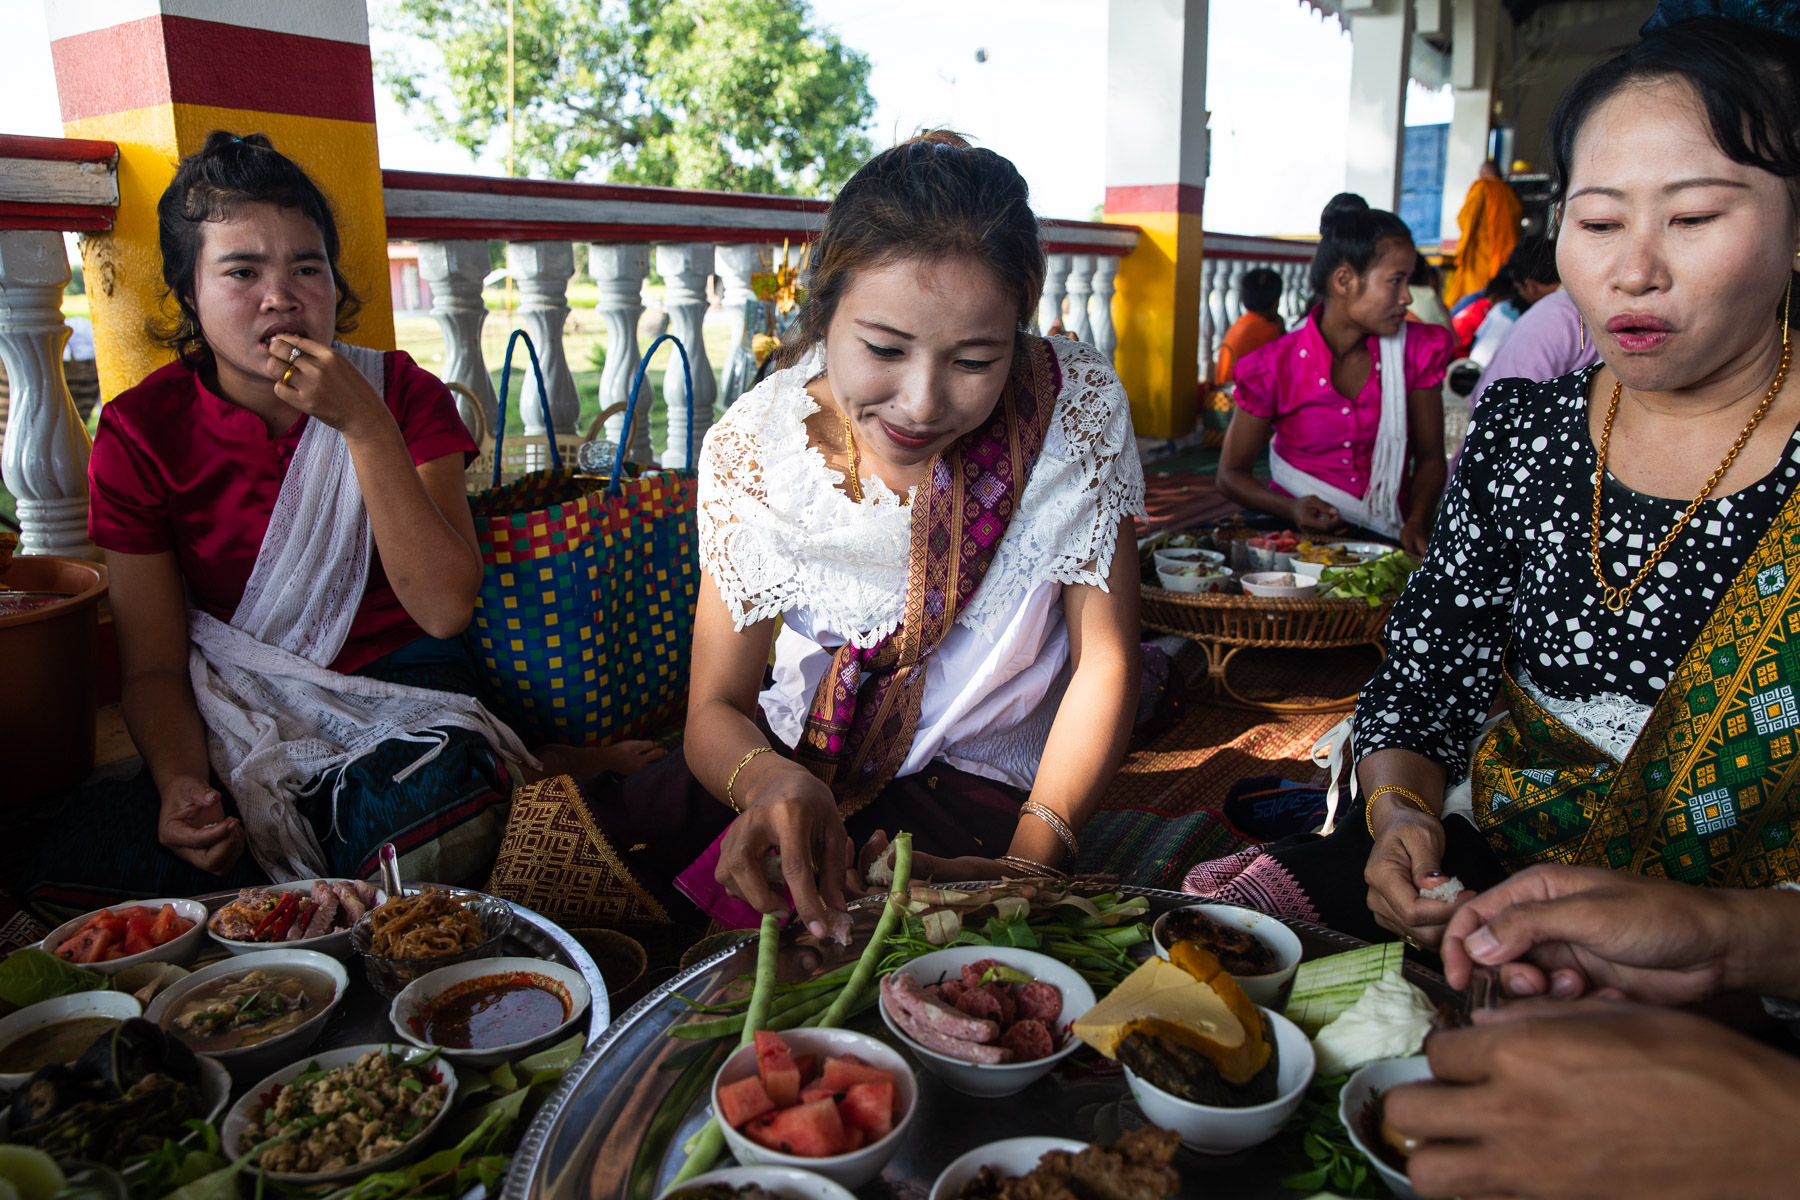 Women eating food at ceremony